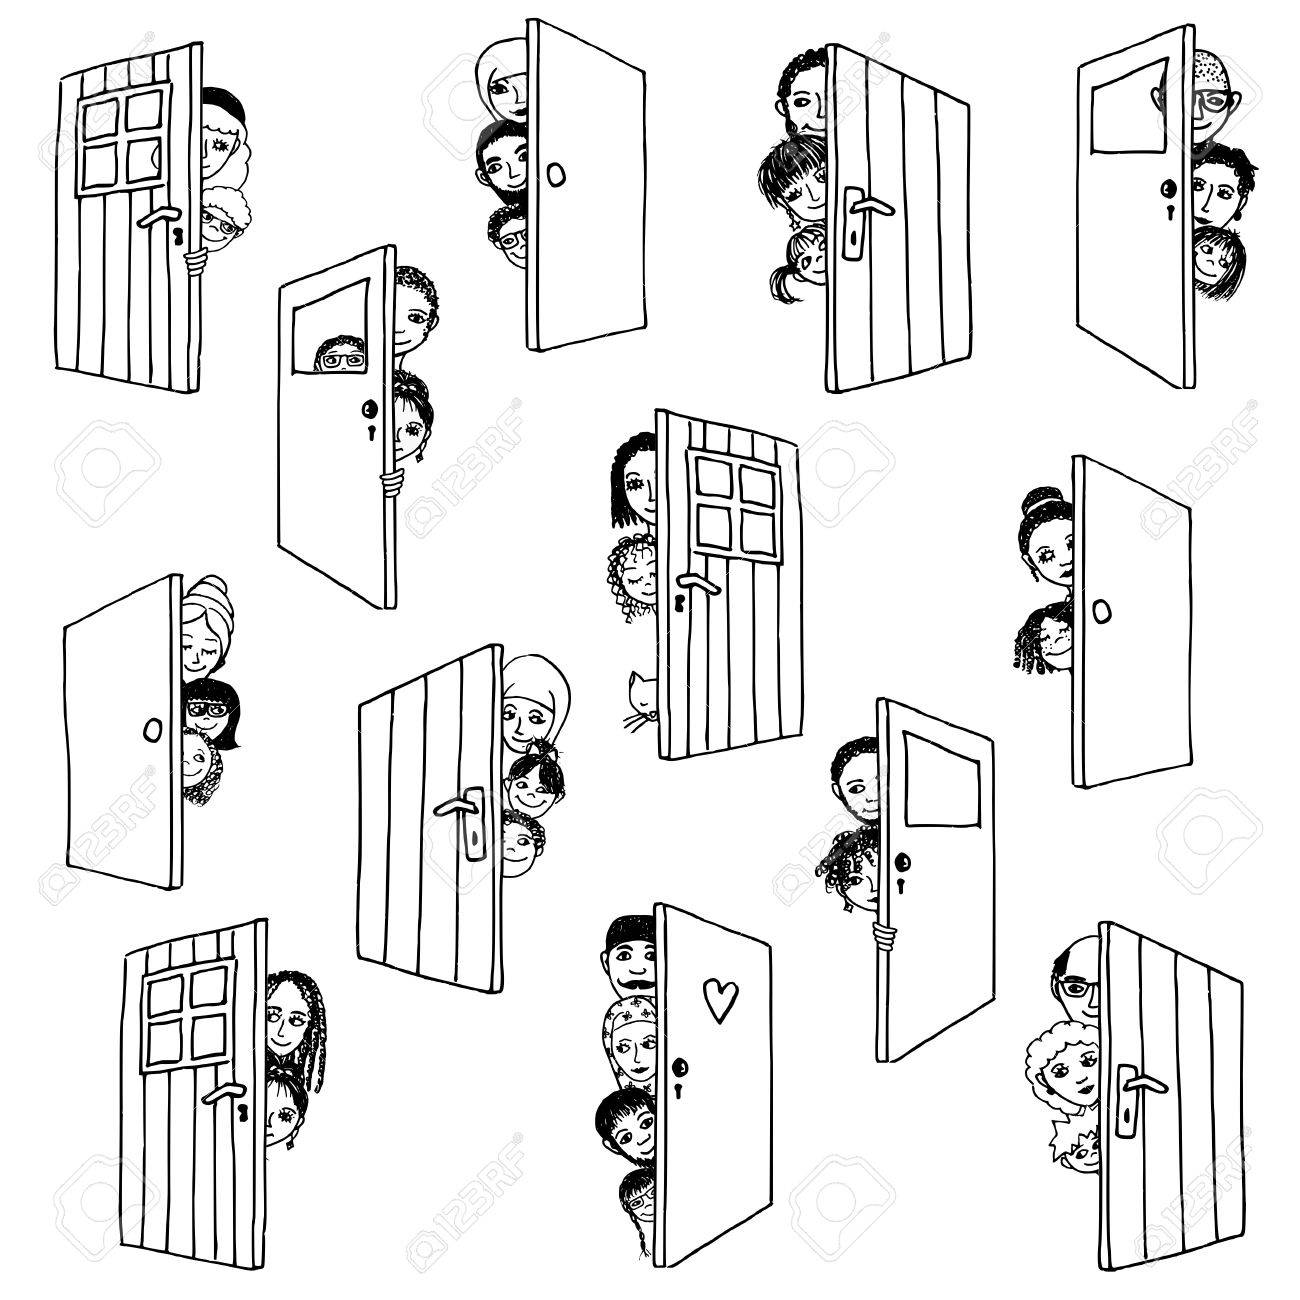 Funny and cute hand drawn illustration of various people and children hiding behind doors, or opening doors to welcome guests - 73512096